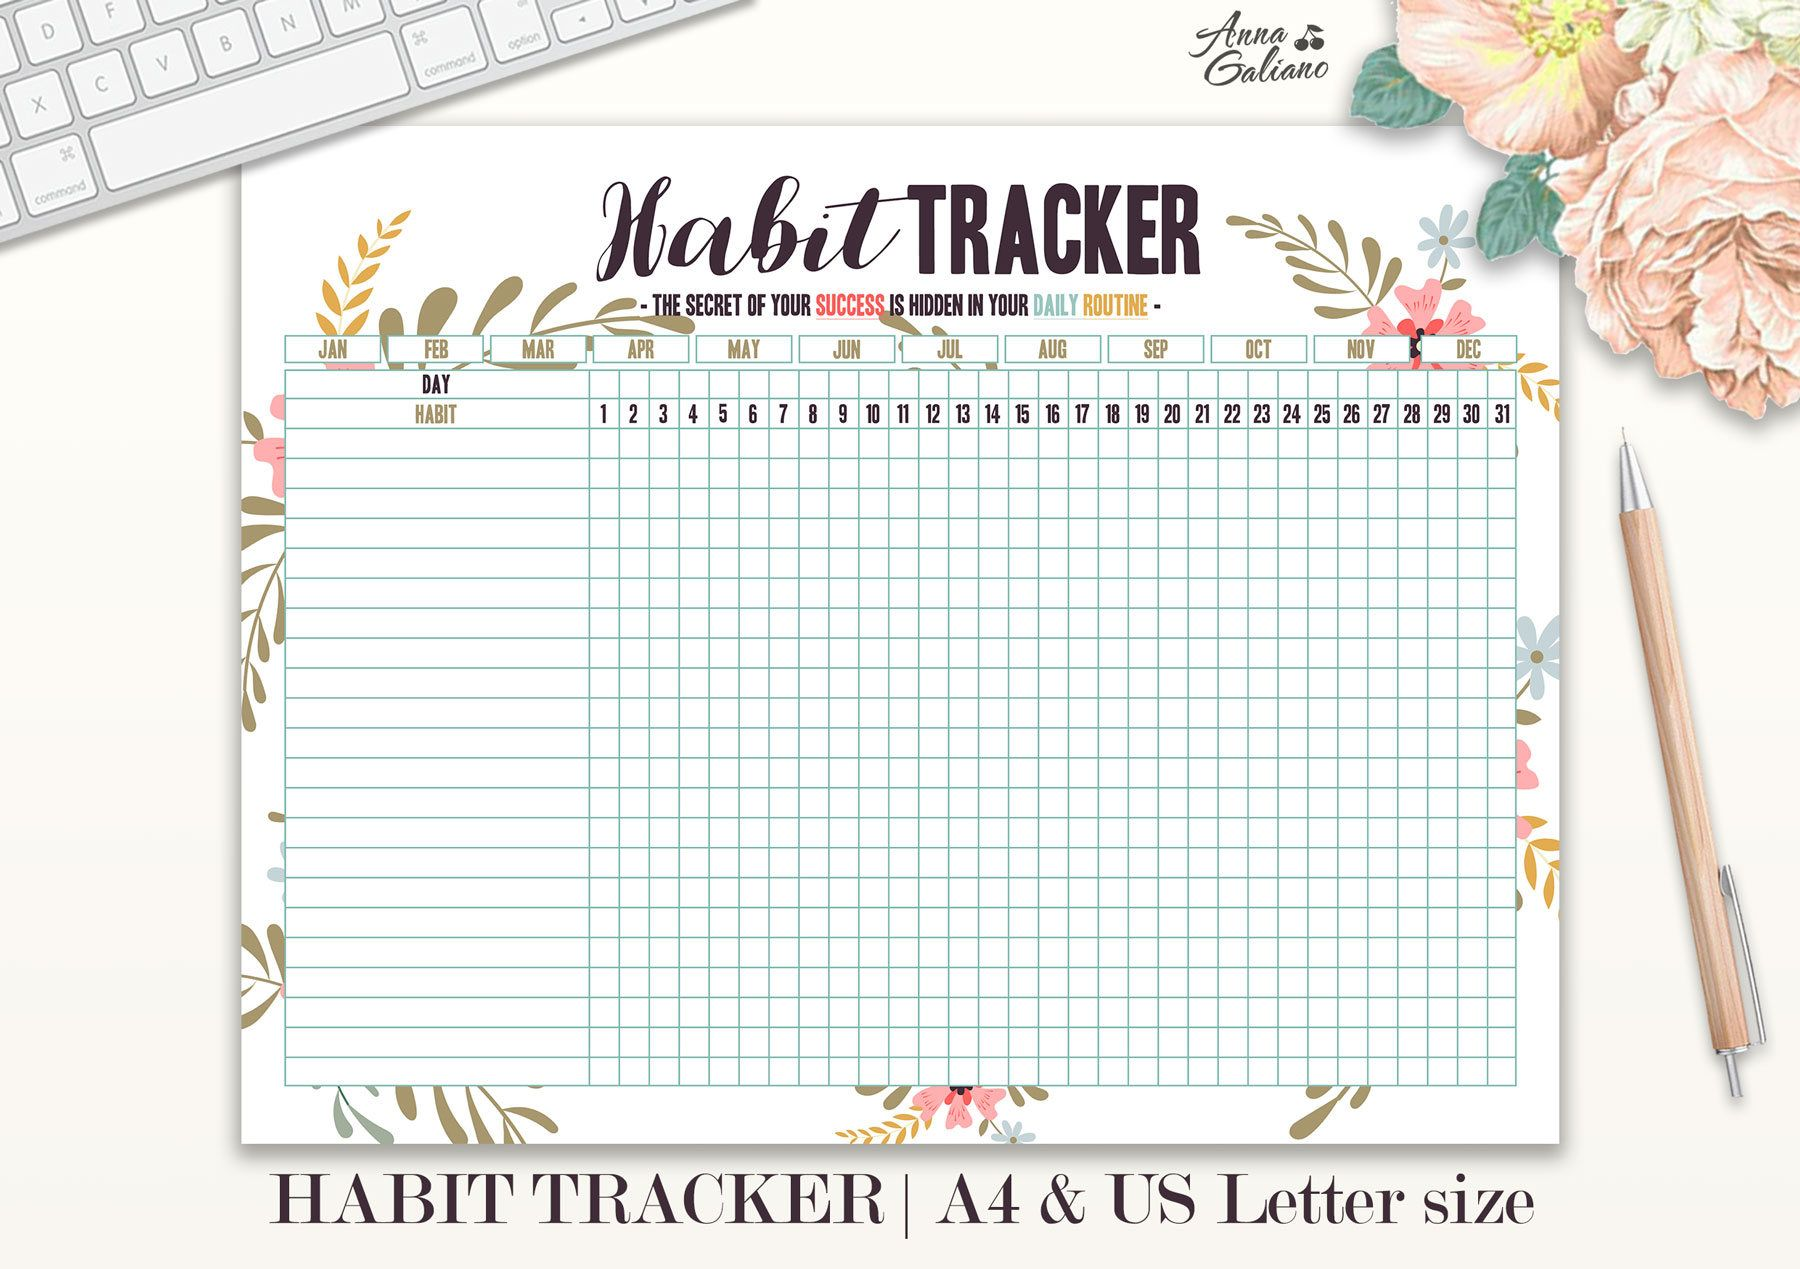 Habit Tracker Printable Daily Habits Planner Monthly Habits Bullet Journal Daily Routine